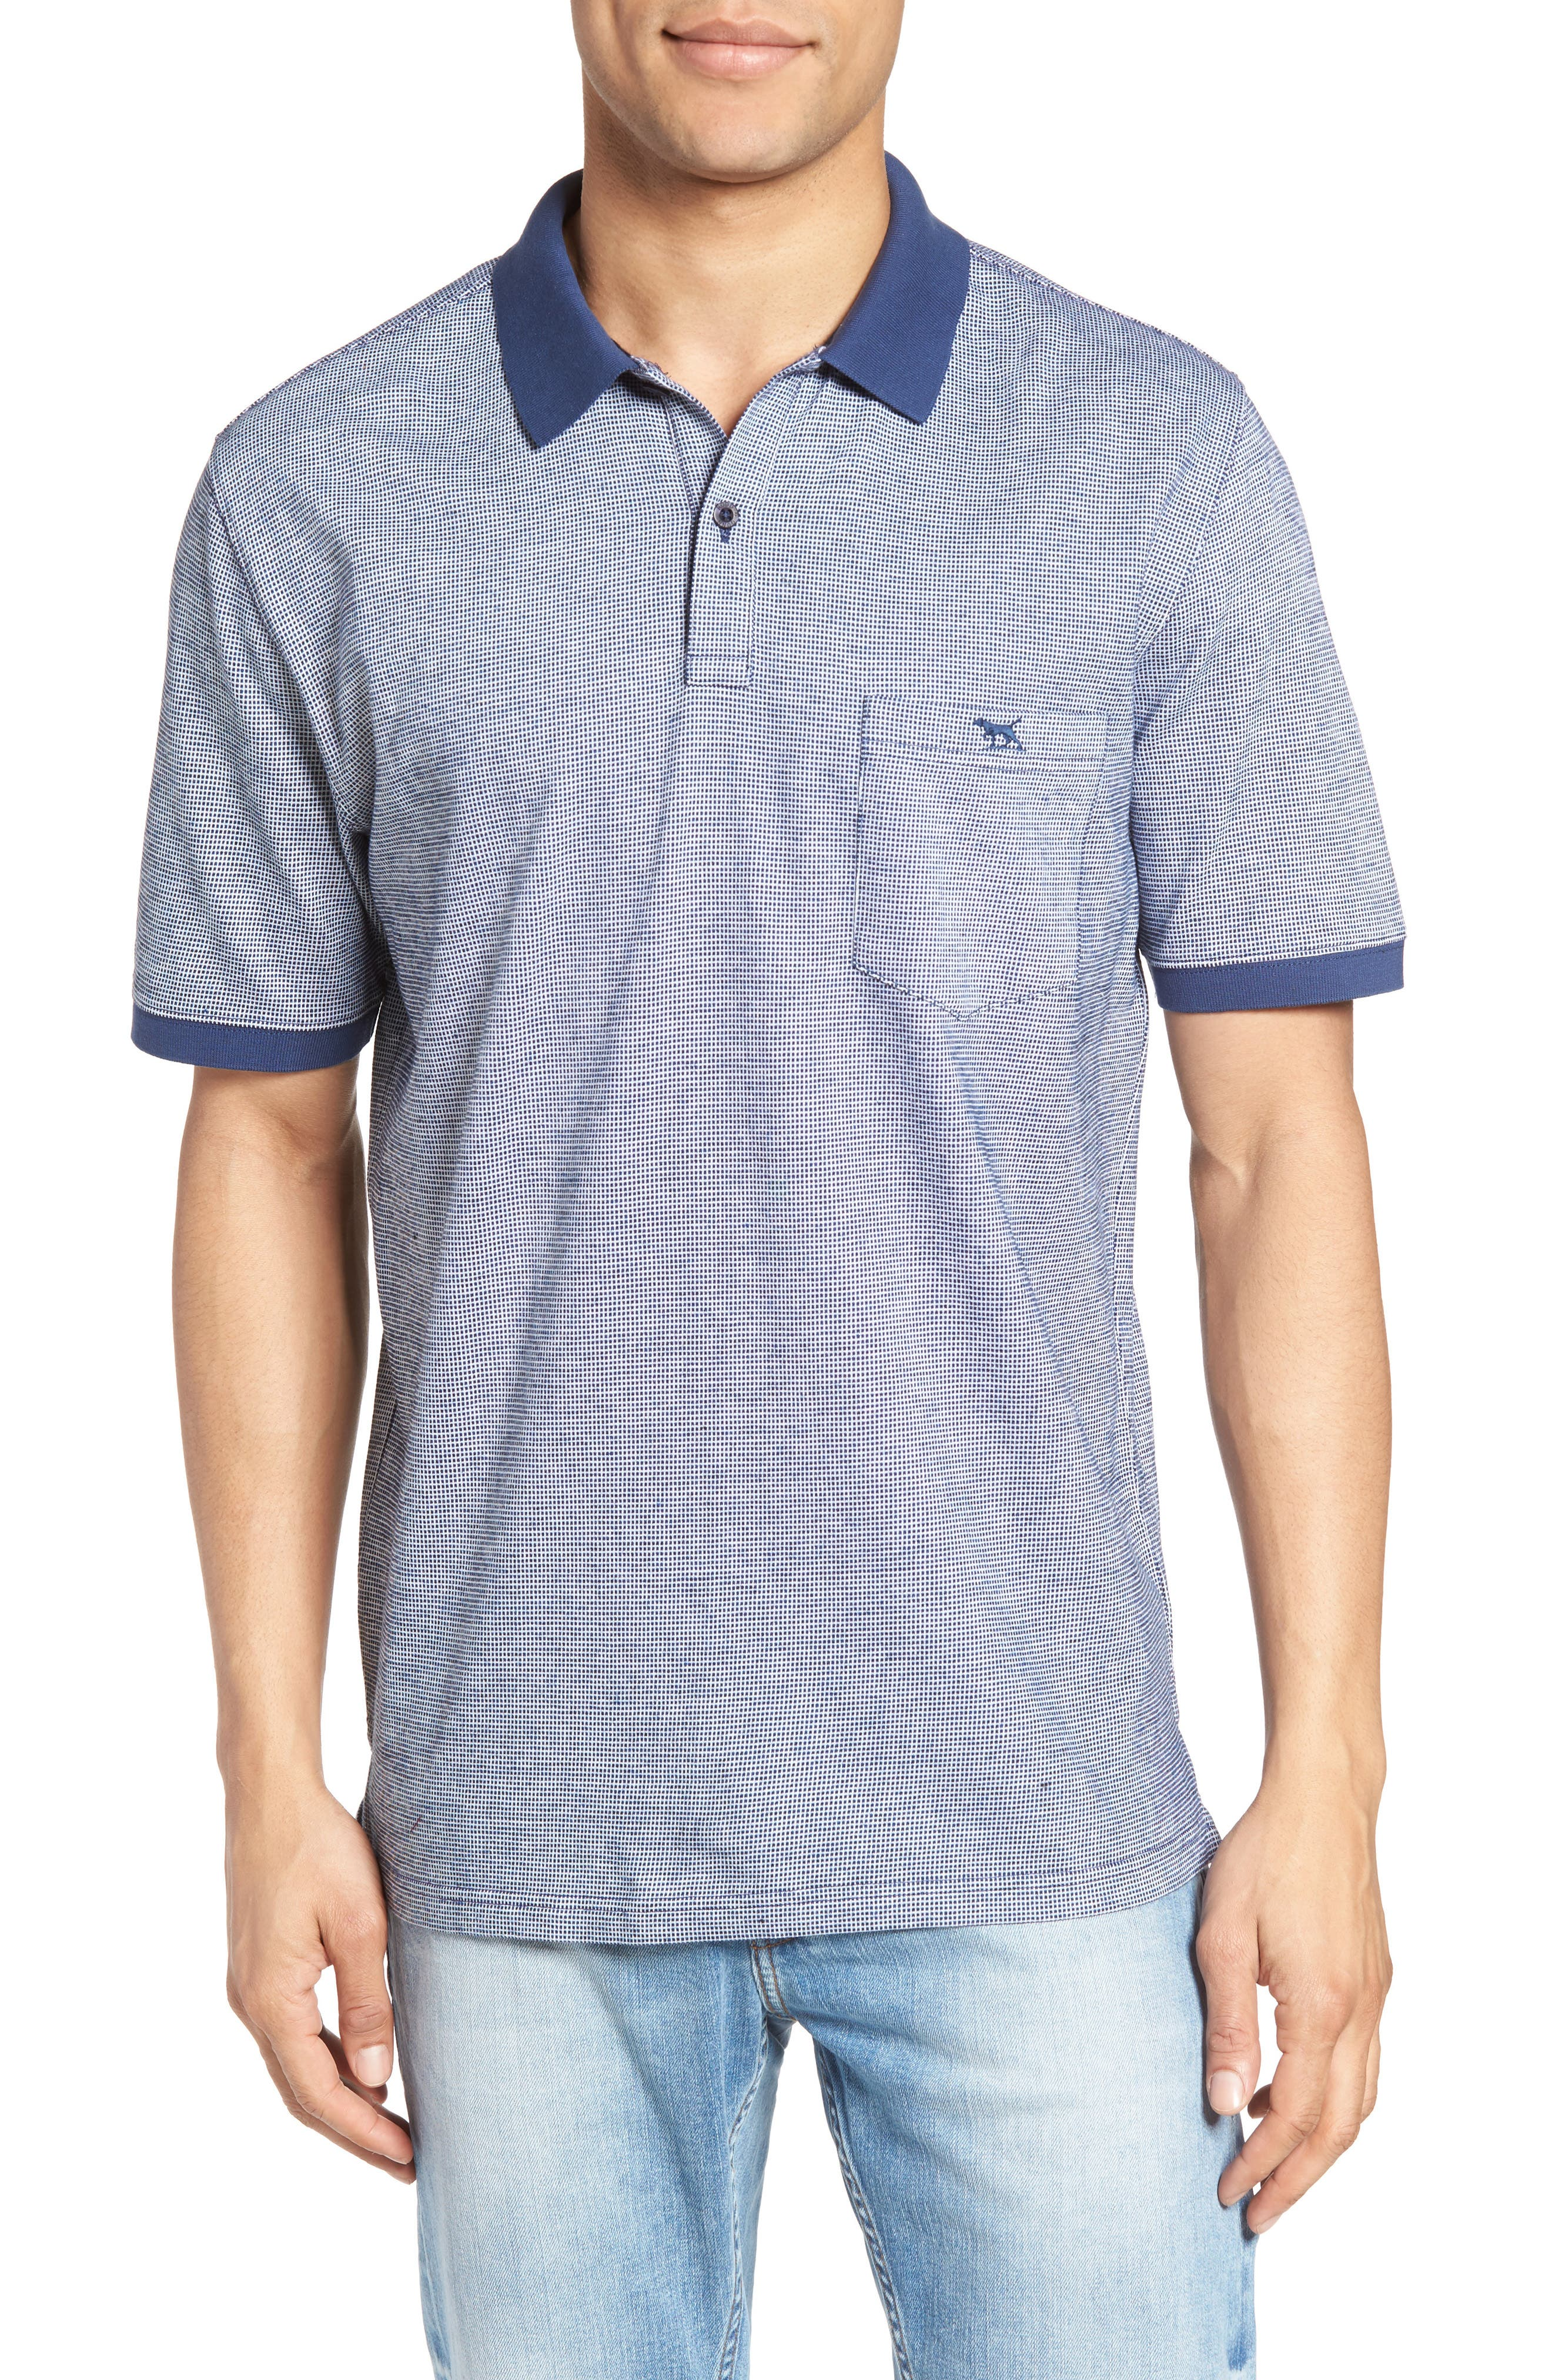 Raes Junction Polo,                         Main,                         color, 420